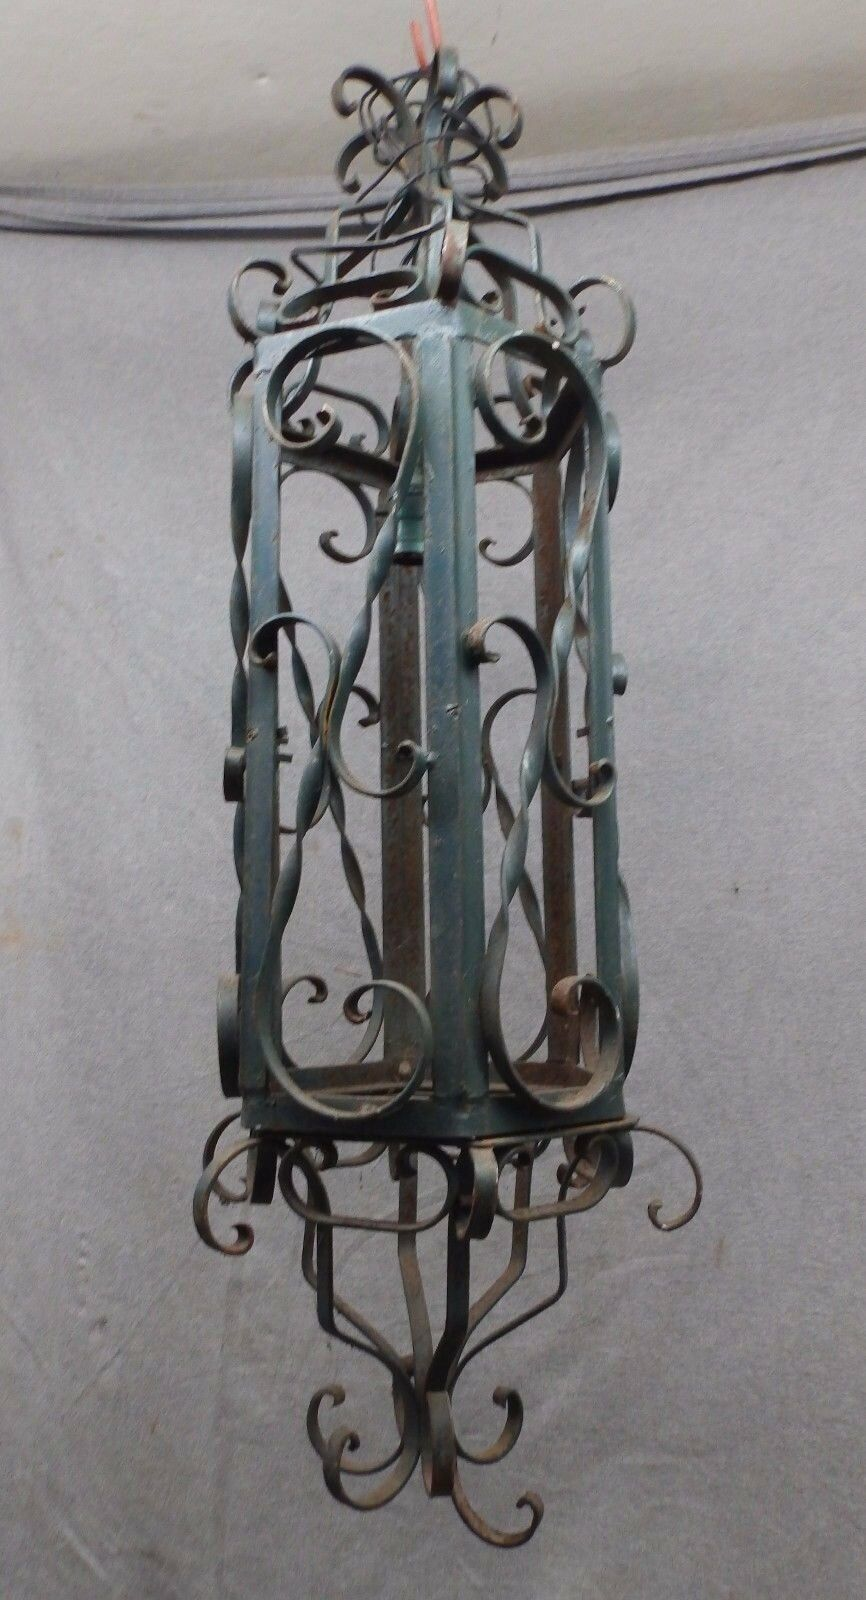 Large 1950s Wrought Iron Pendant Light Fixture Vtg Mid Century Garden 1282-16